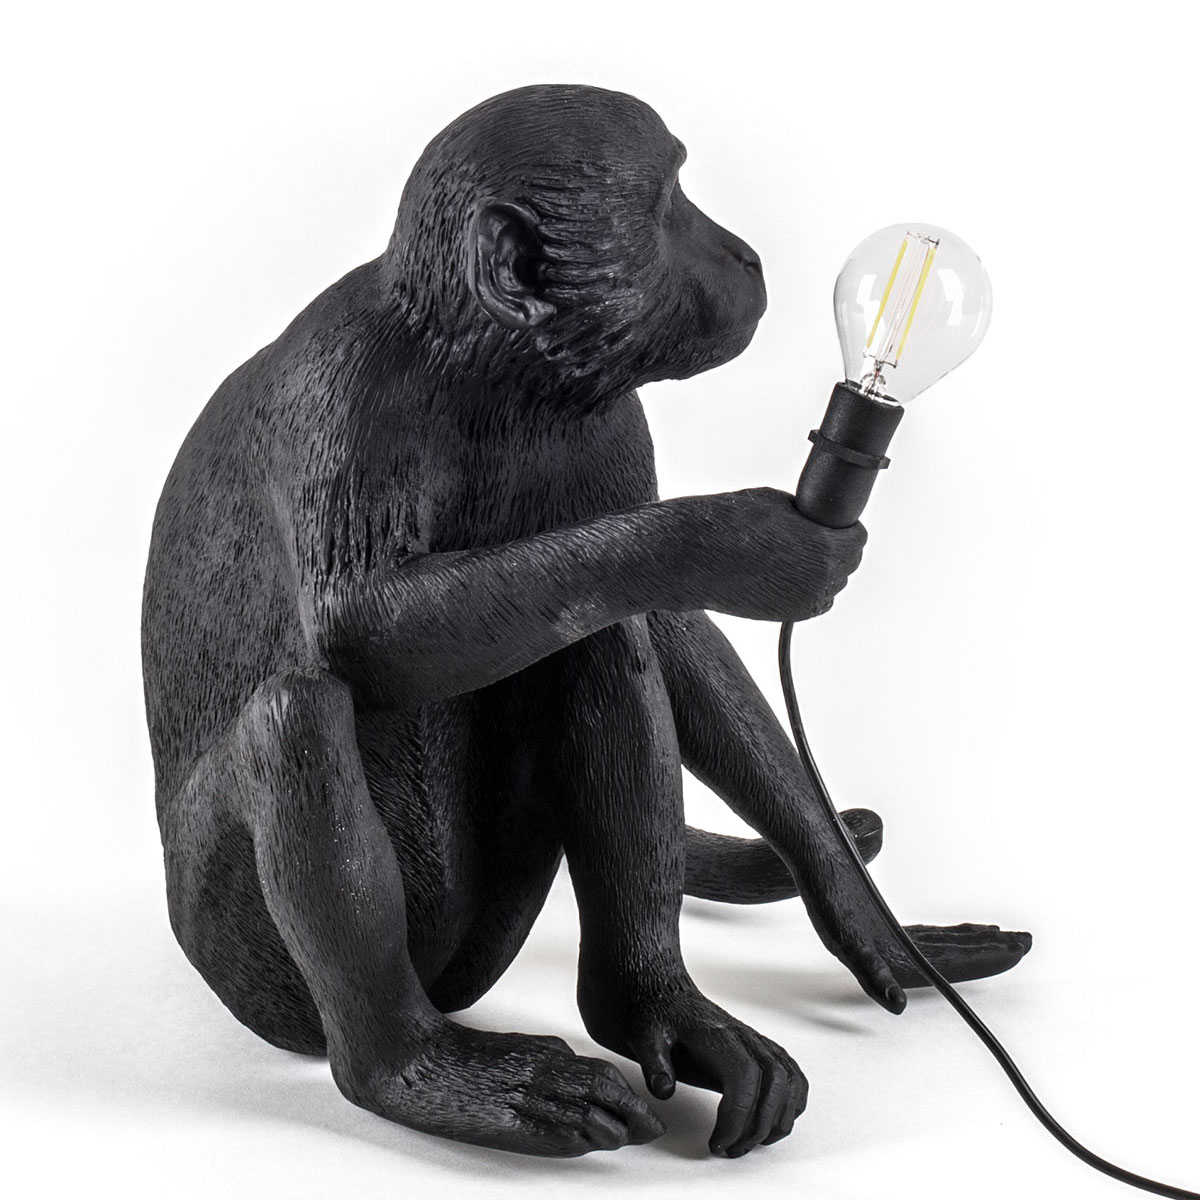 Seletti Sitting Monkey Light Black Outdoor